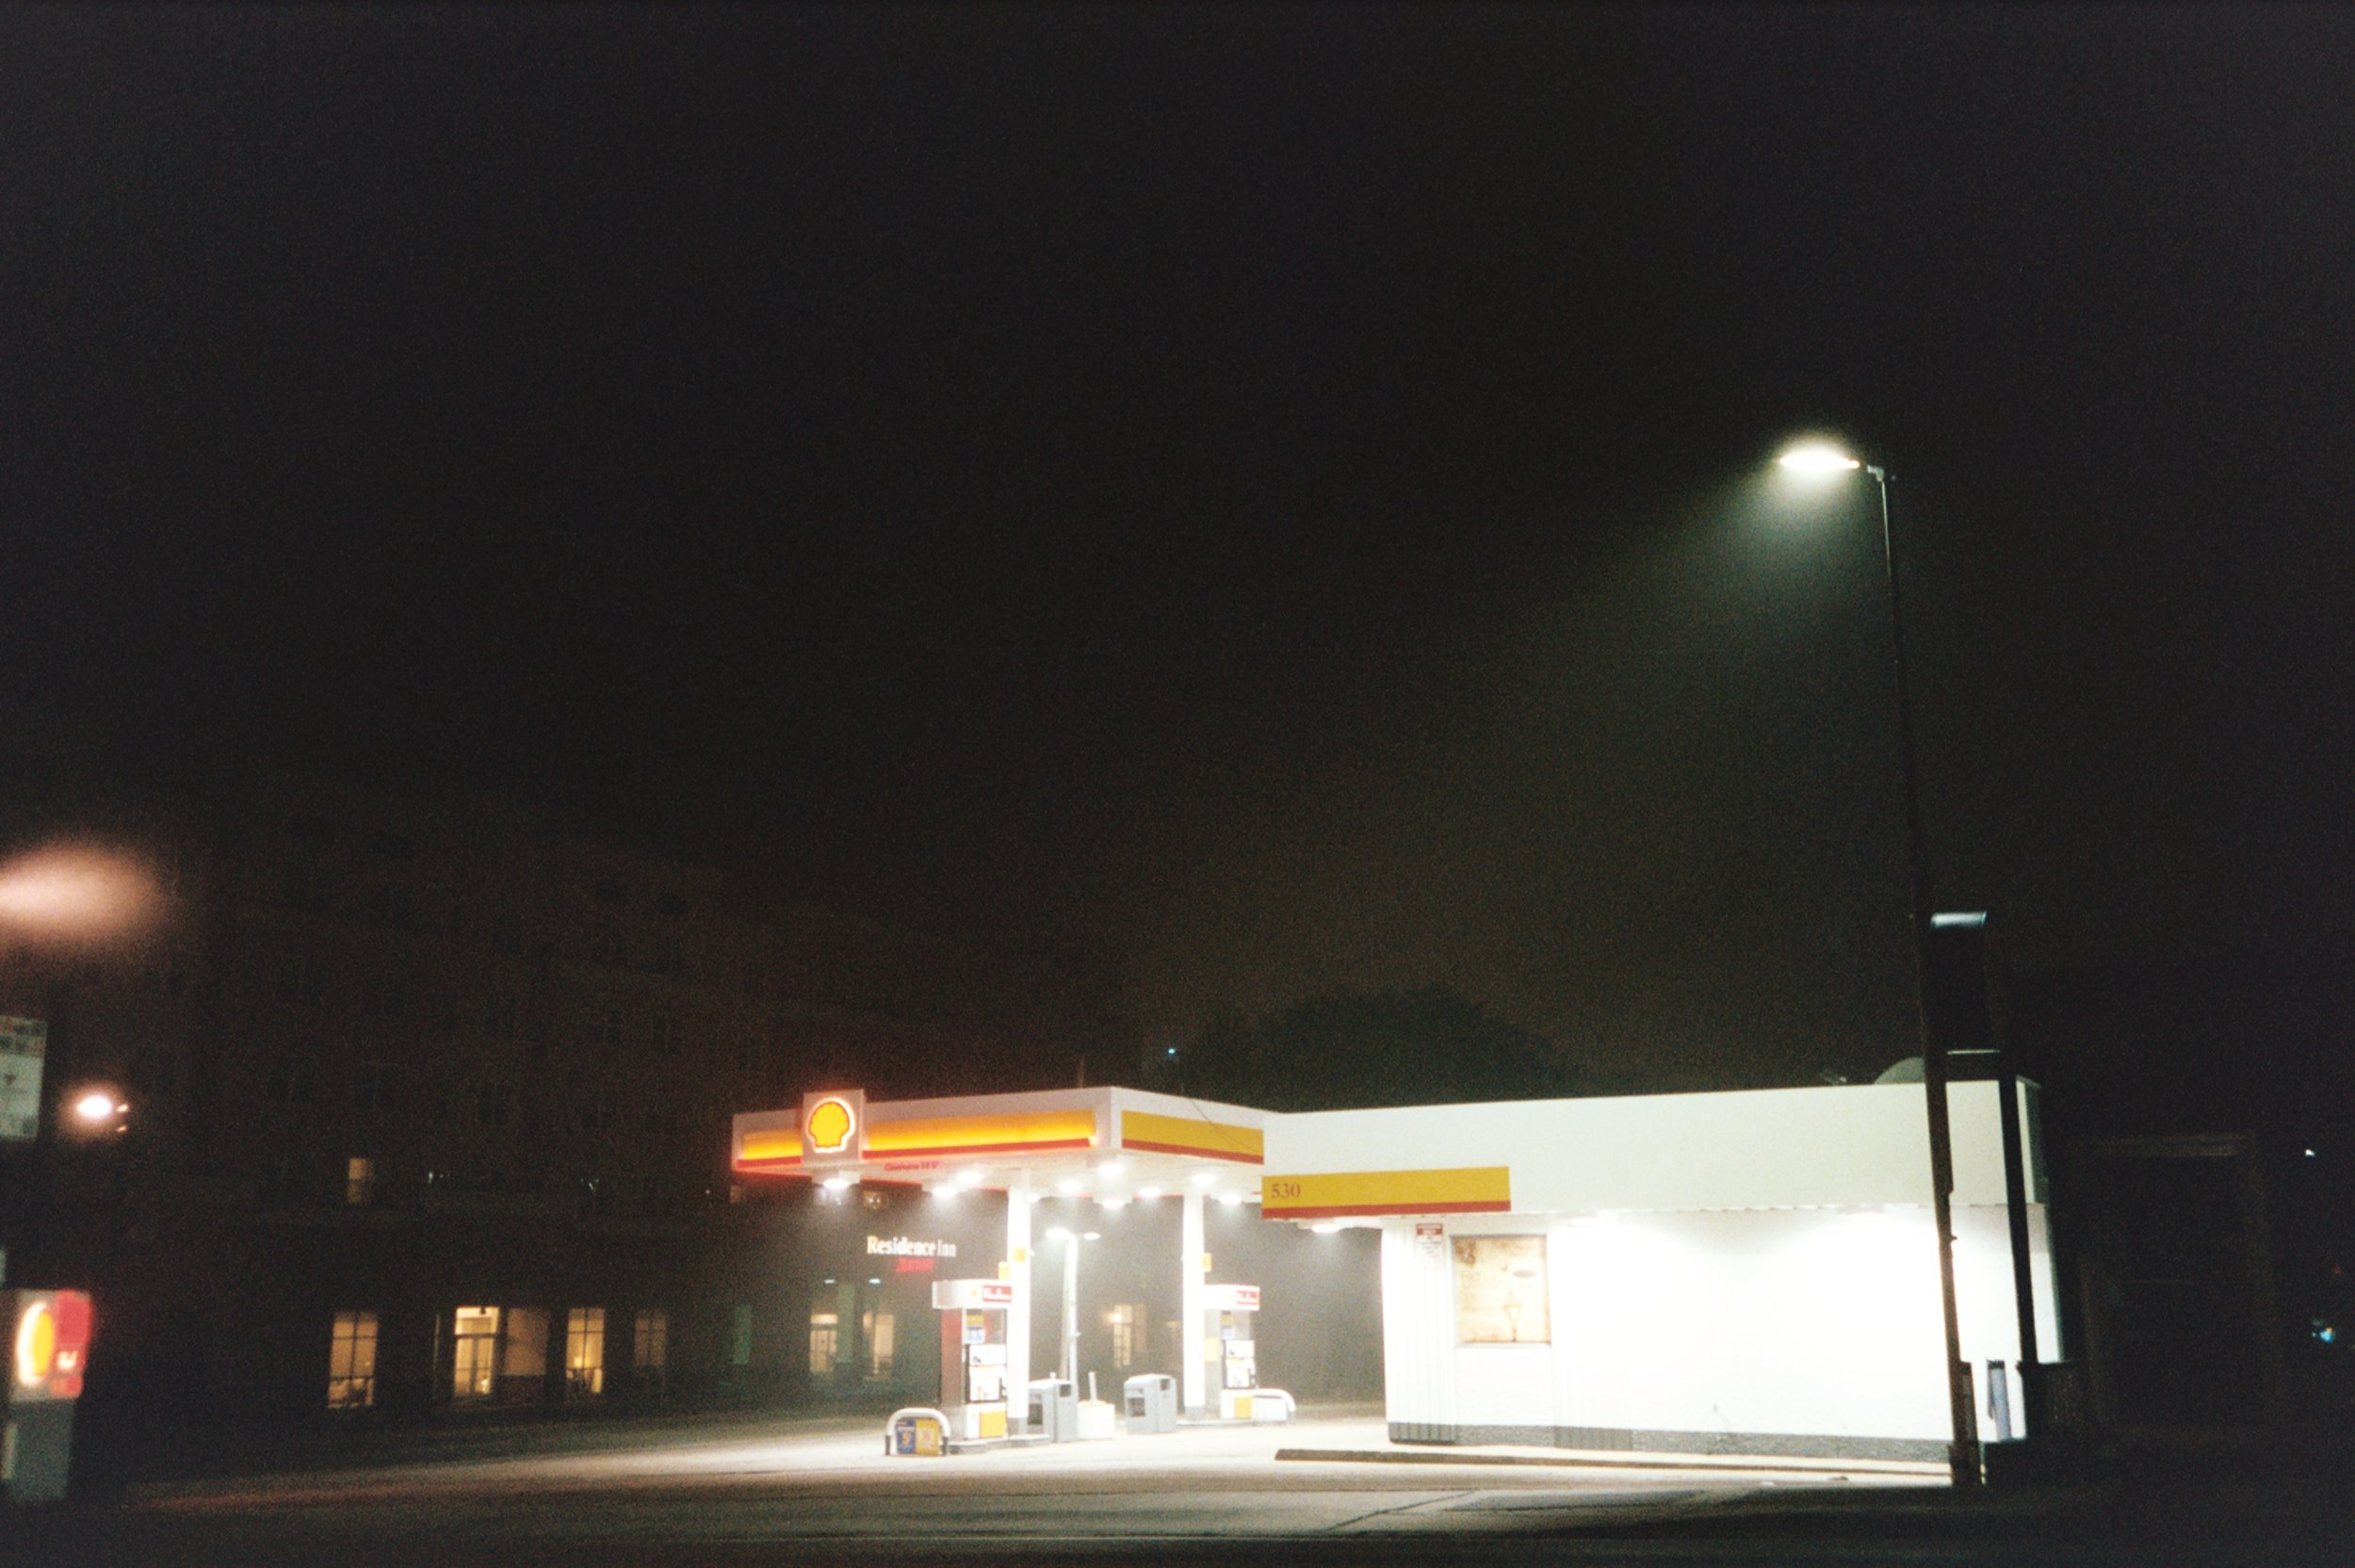 Shell station, Tallahassee, Florida